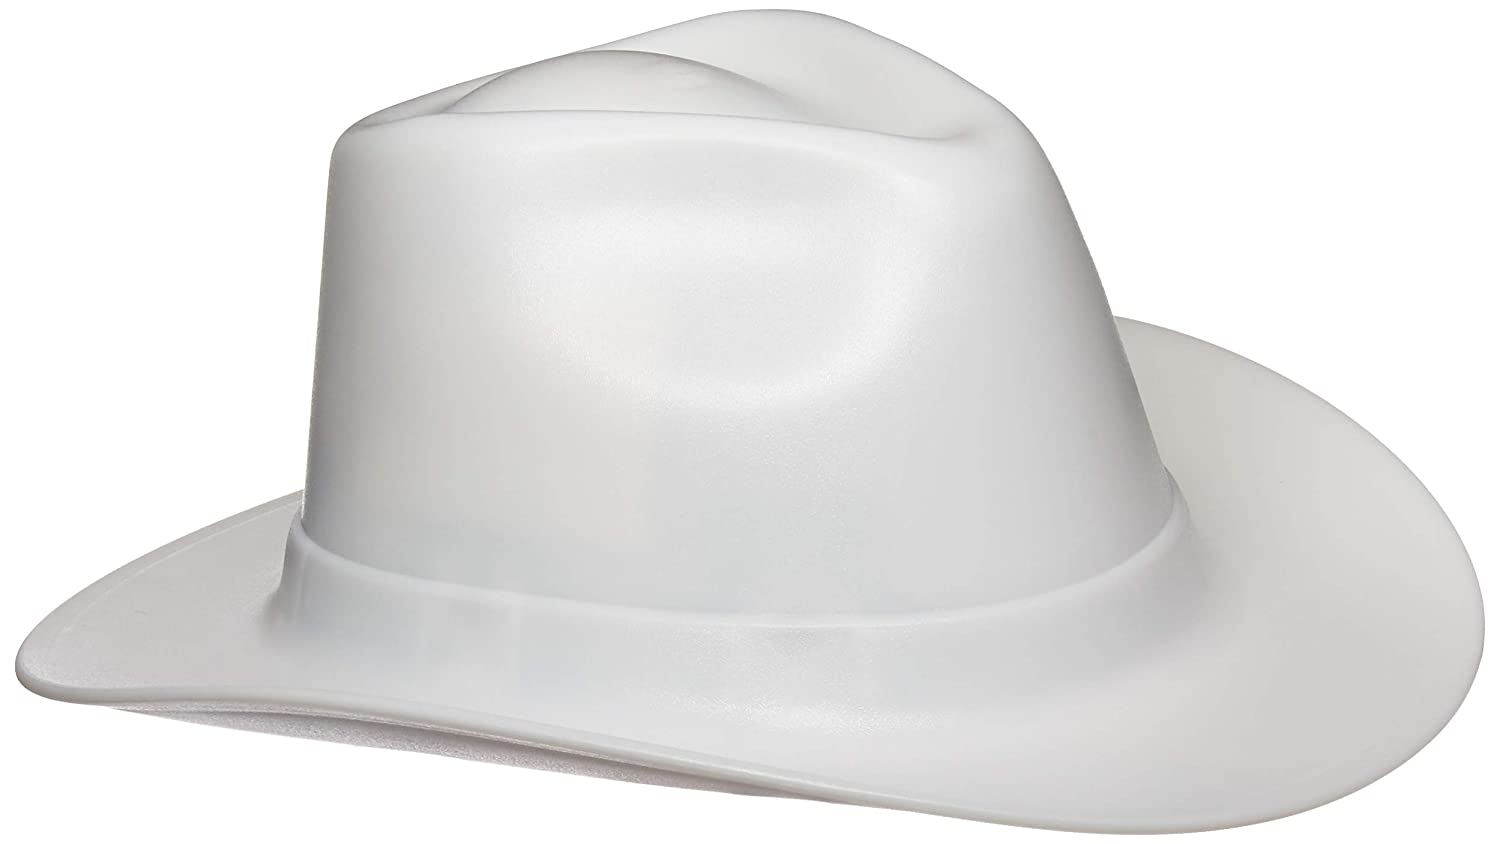 f4a061cec22 Vulcan Cowboy Hard Hat 6 Point Ratchet Suspension - White  VCB200   Amazon.ca  Tools   Home Improvement